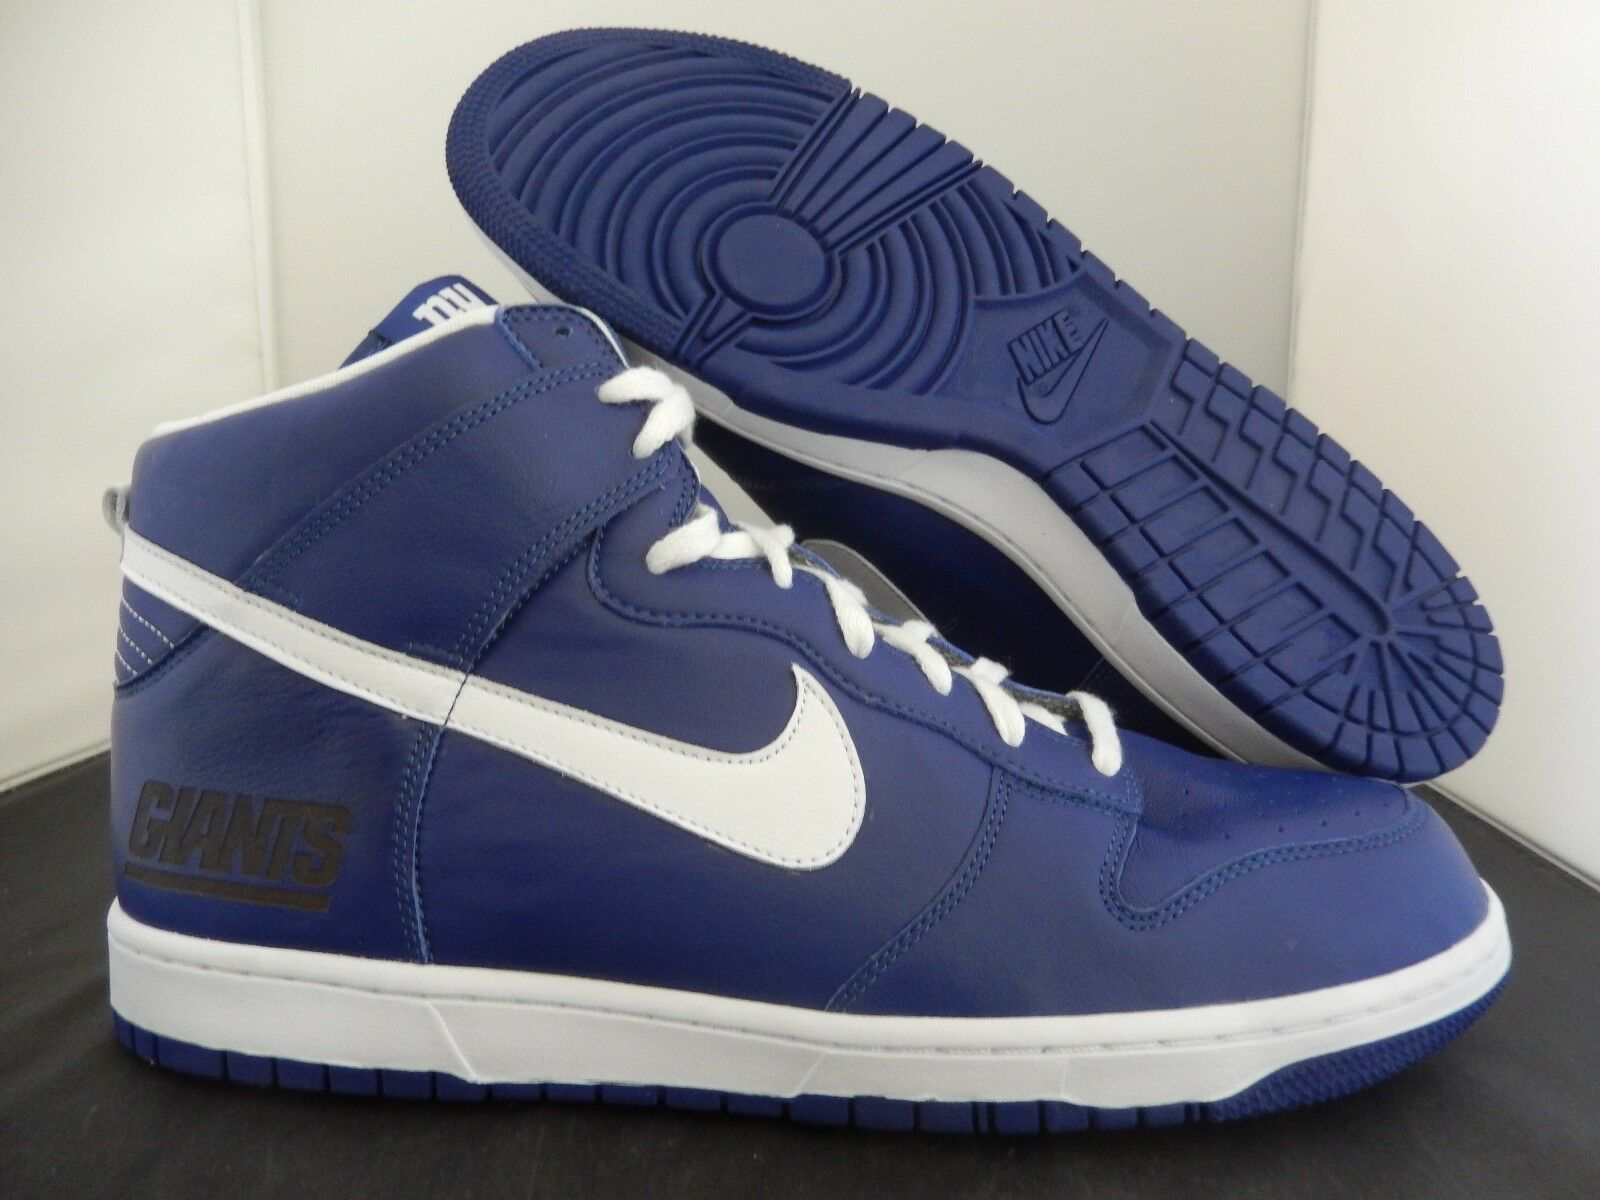 NIKE DUNK HIGH iD NFL NY NEW YORK GIANTS SZ 15